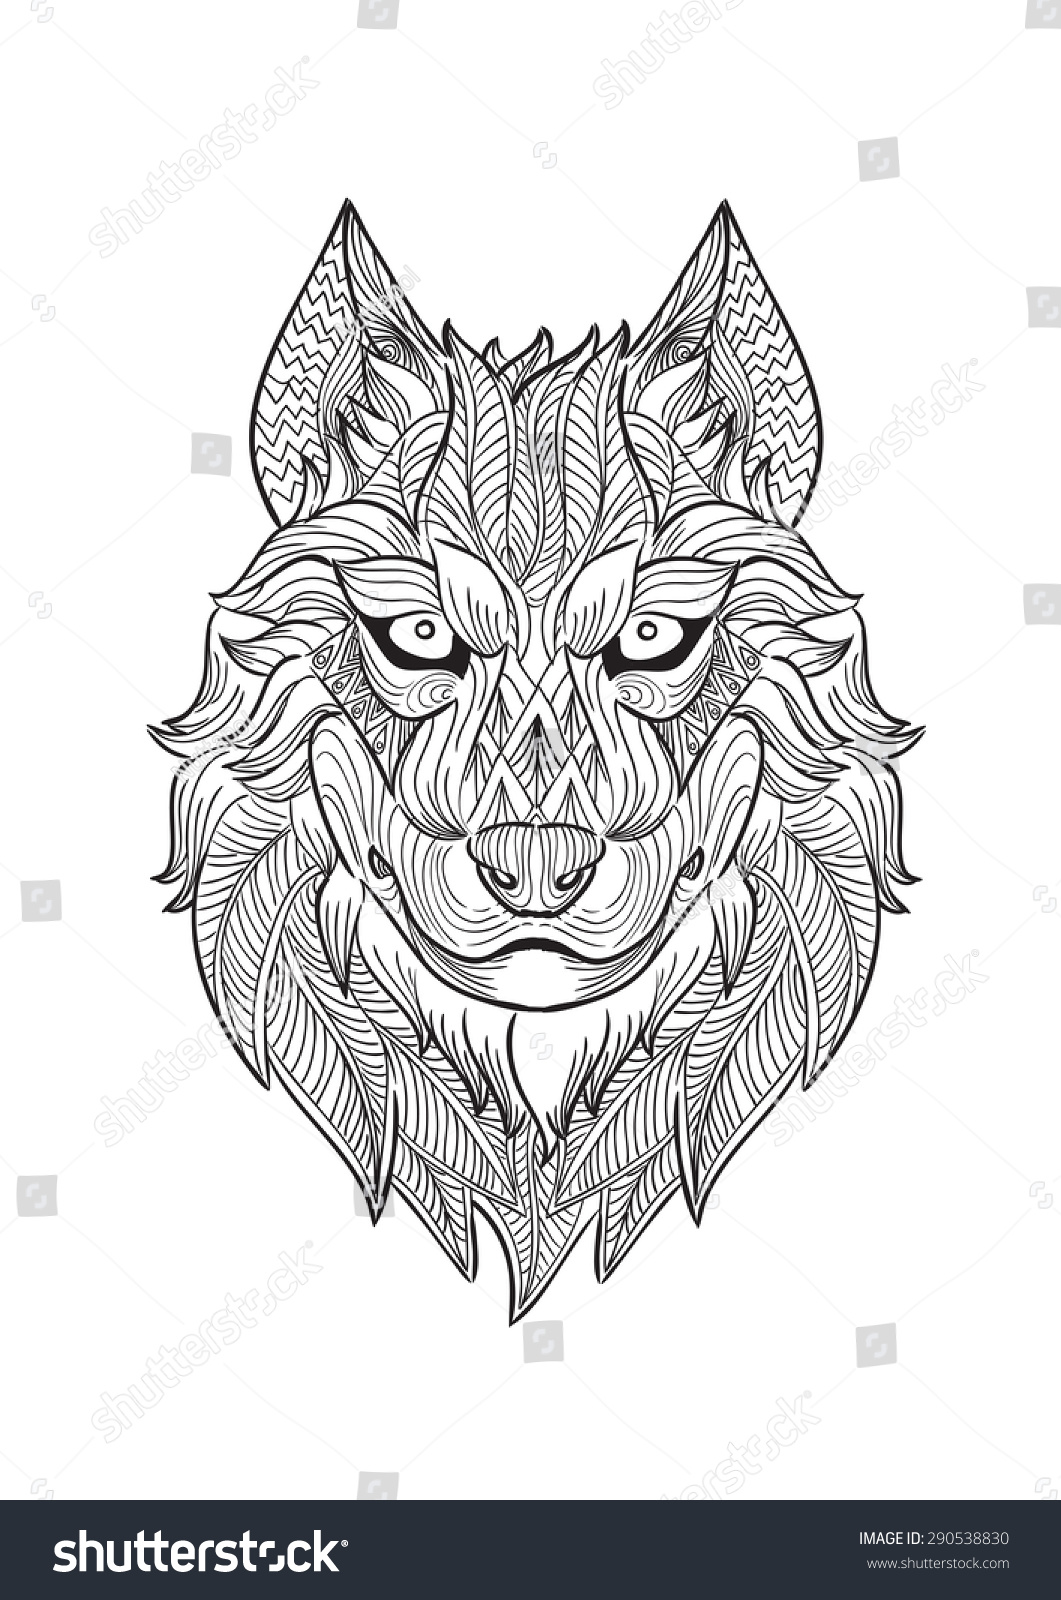 Hand draw wolf head zentangle style stock vector 290538830 hand draw of wolf head in zentangle style ccuart Choice Image